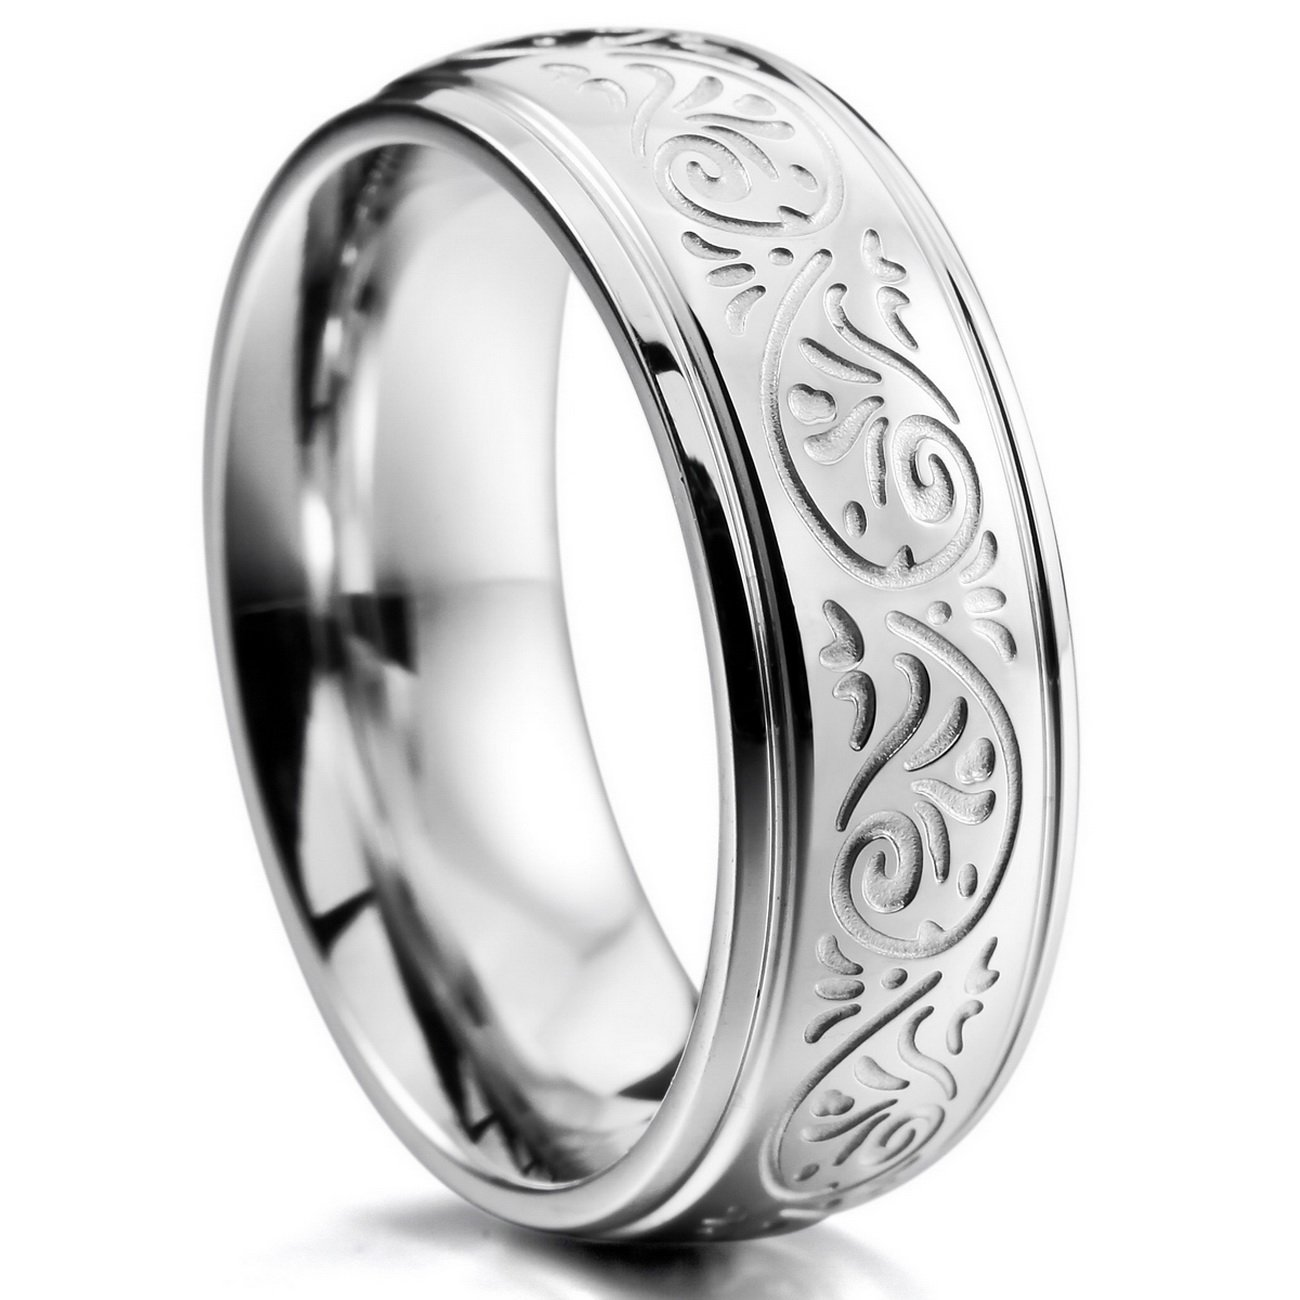 MOWOM Silver Tone 7mm Stainless Steel Ring Band Engraved Florentine Design ca5040014-parent